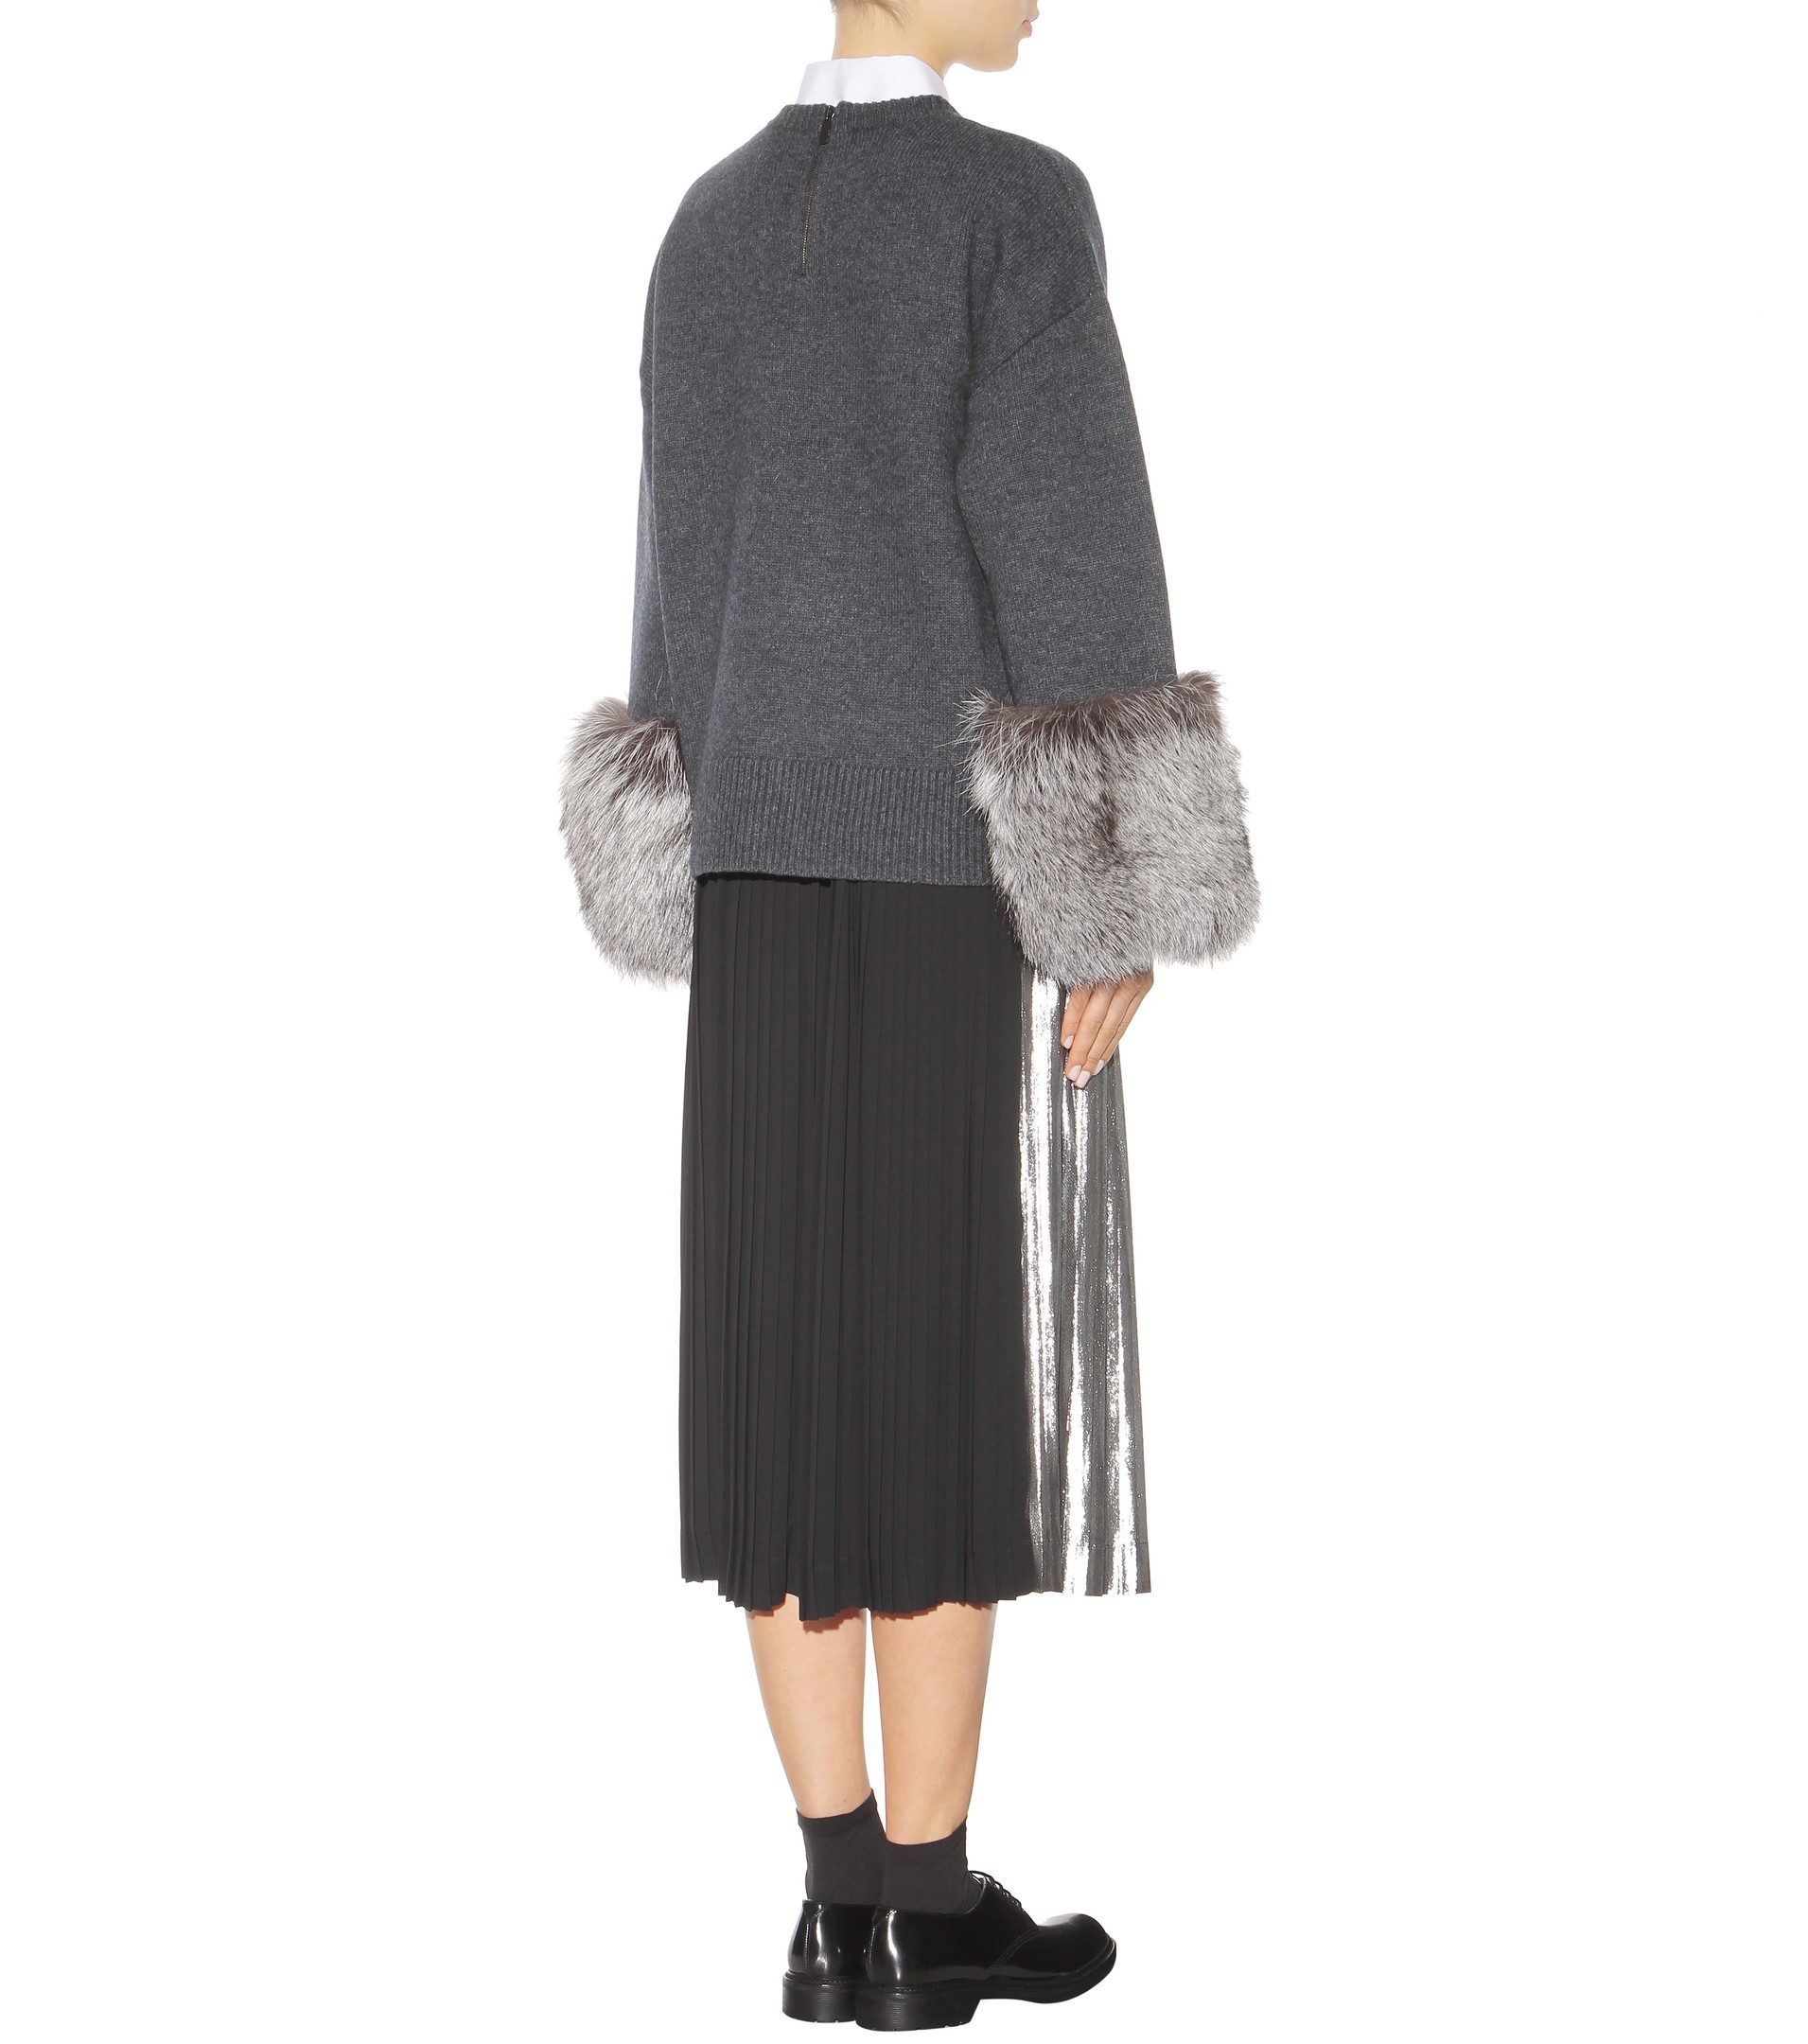 Grey Sweater With Blue Fur Cuff: Michael Kors Sweater With Fur-trim Cuffs In Charcoal